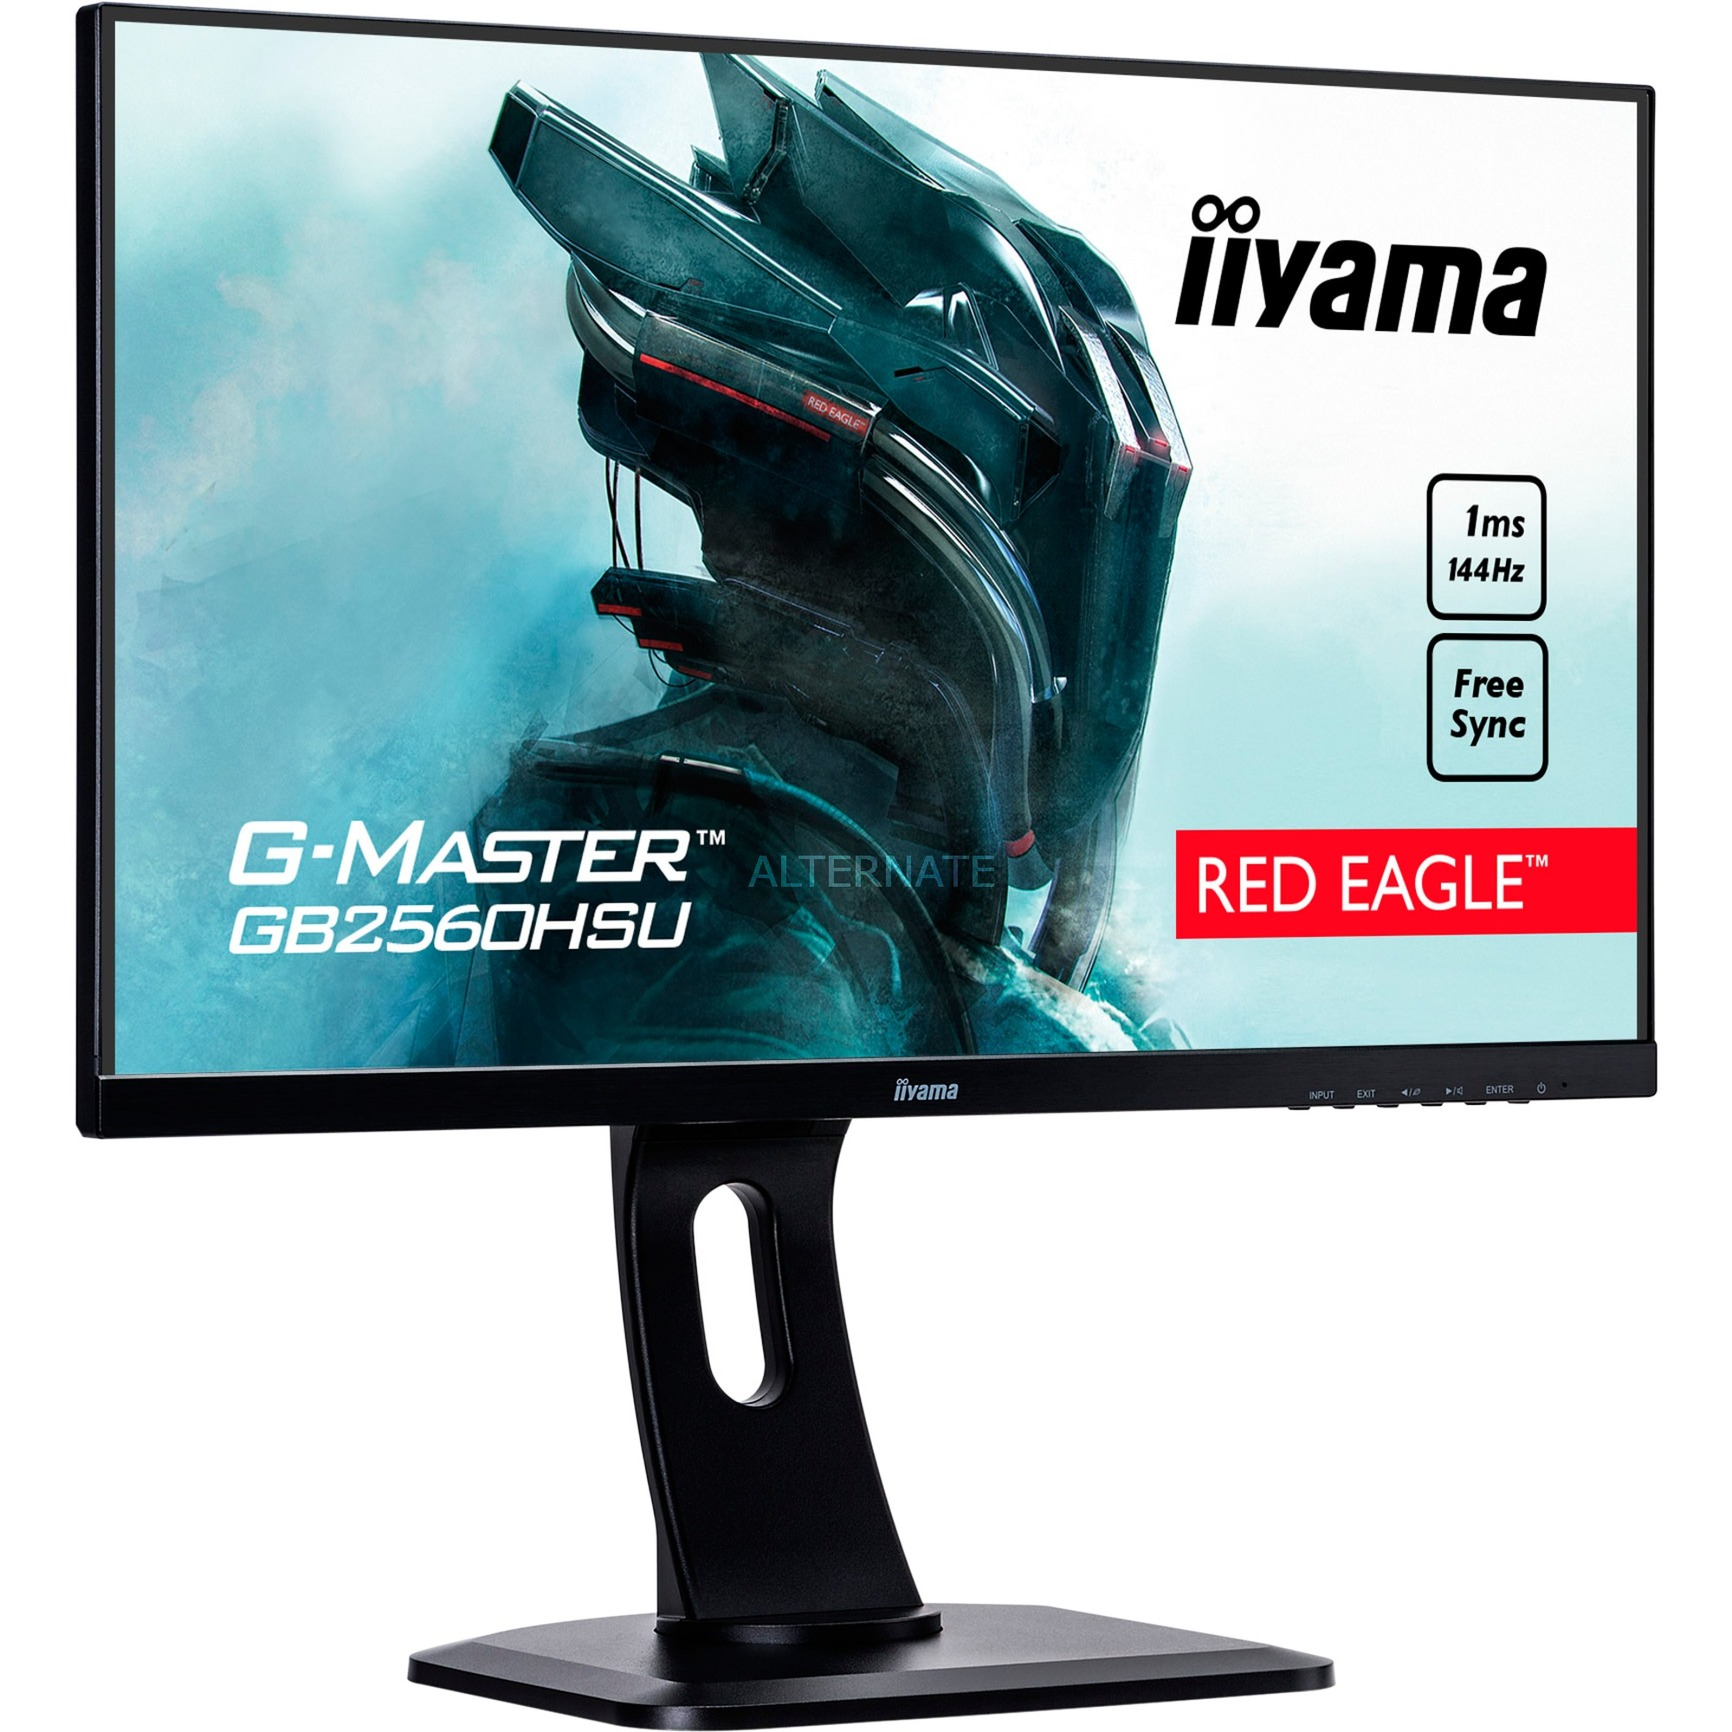 "G-MASTER GB2560HSU-B1 LED display 62,2 cm (24.5"") Full HD Plana Mate Black, Monitor LED"